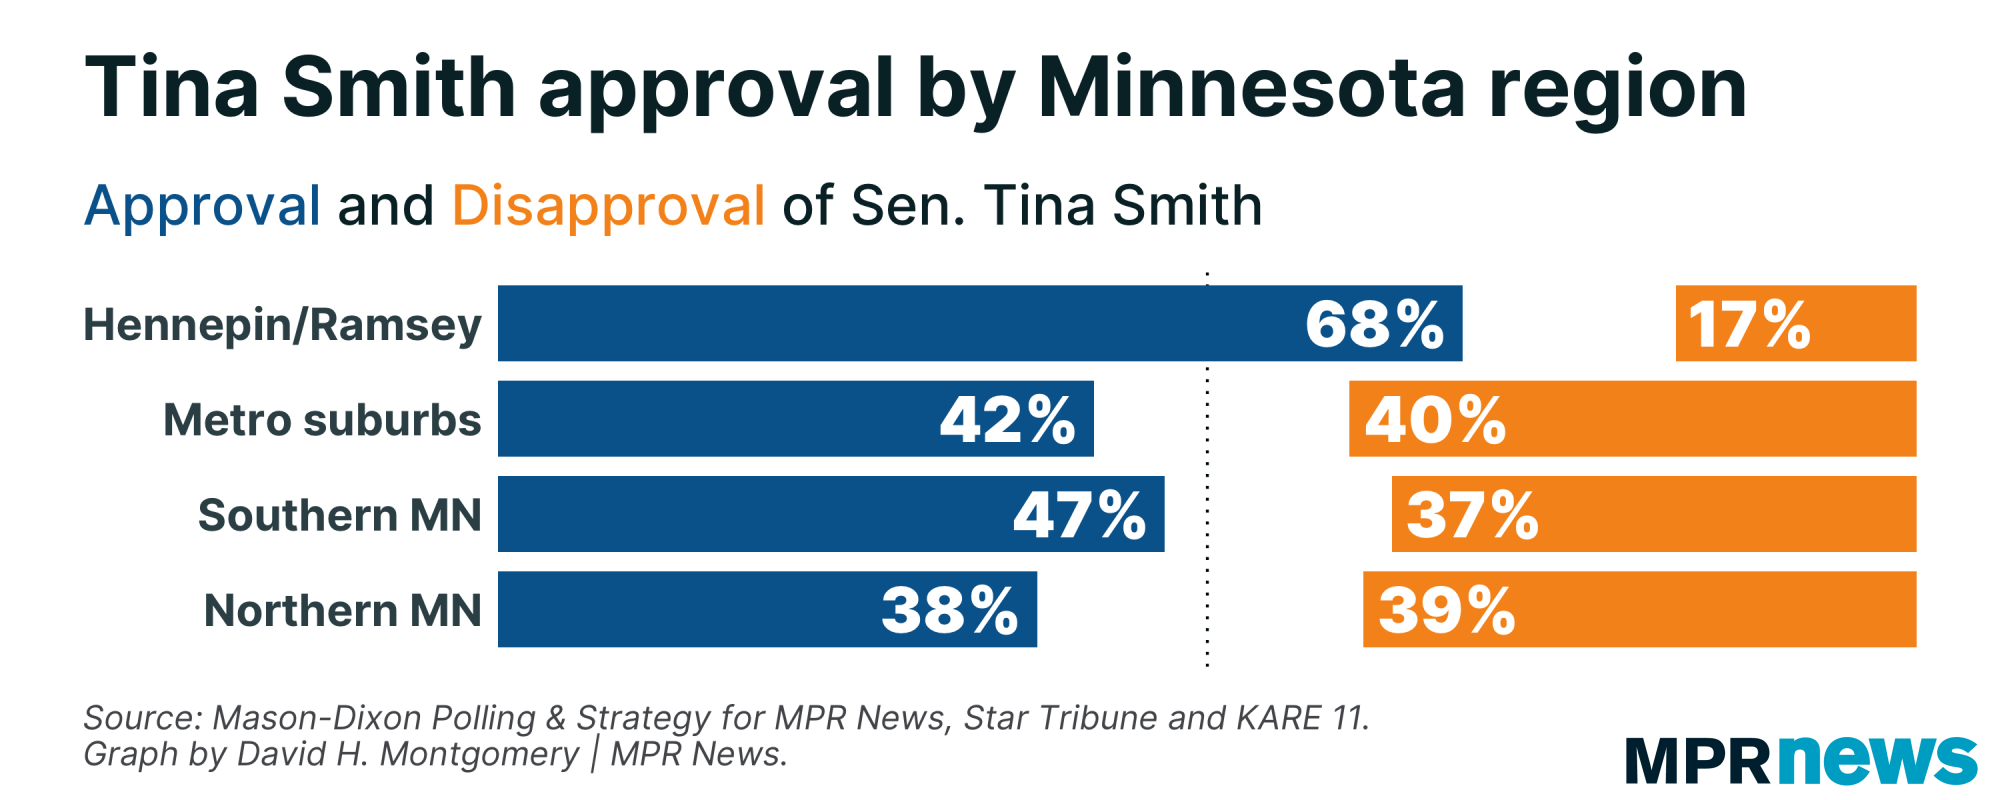 Poll question on Tina Smith's approval rating in Minnesota, by region